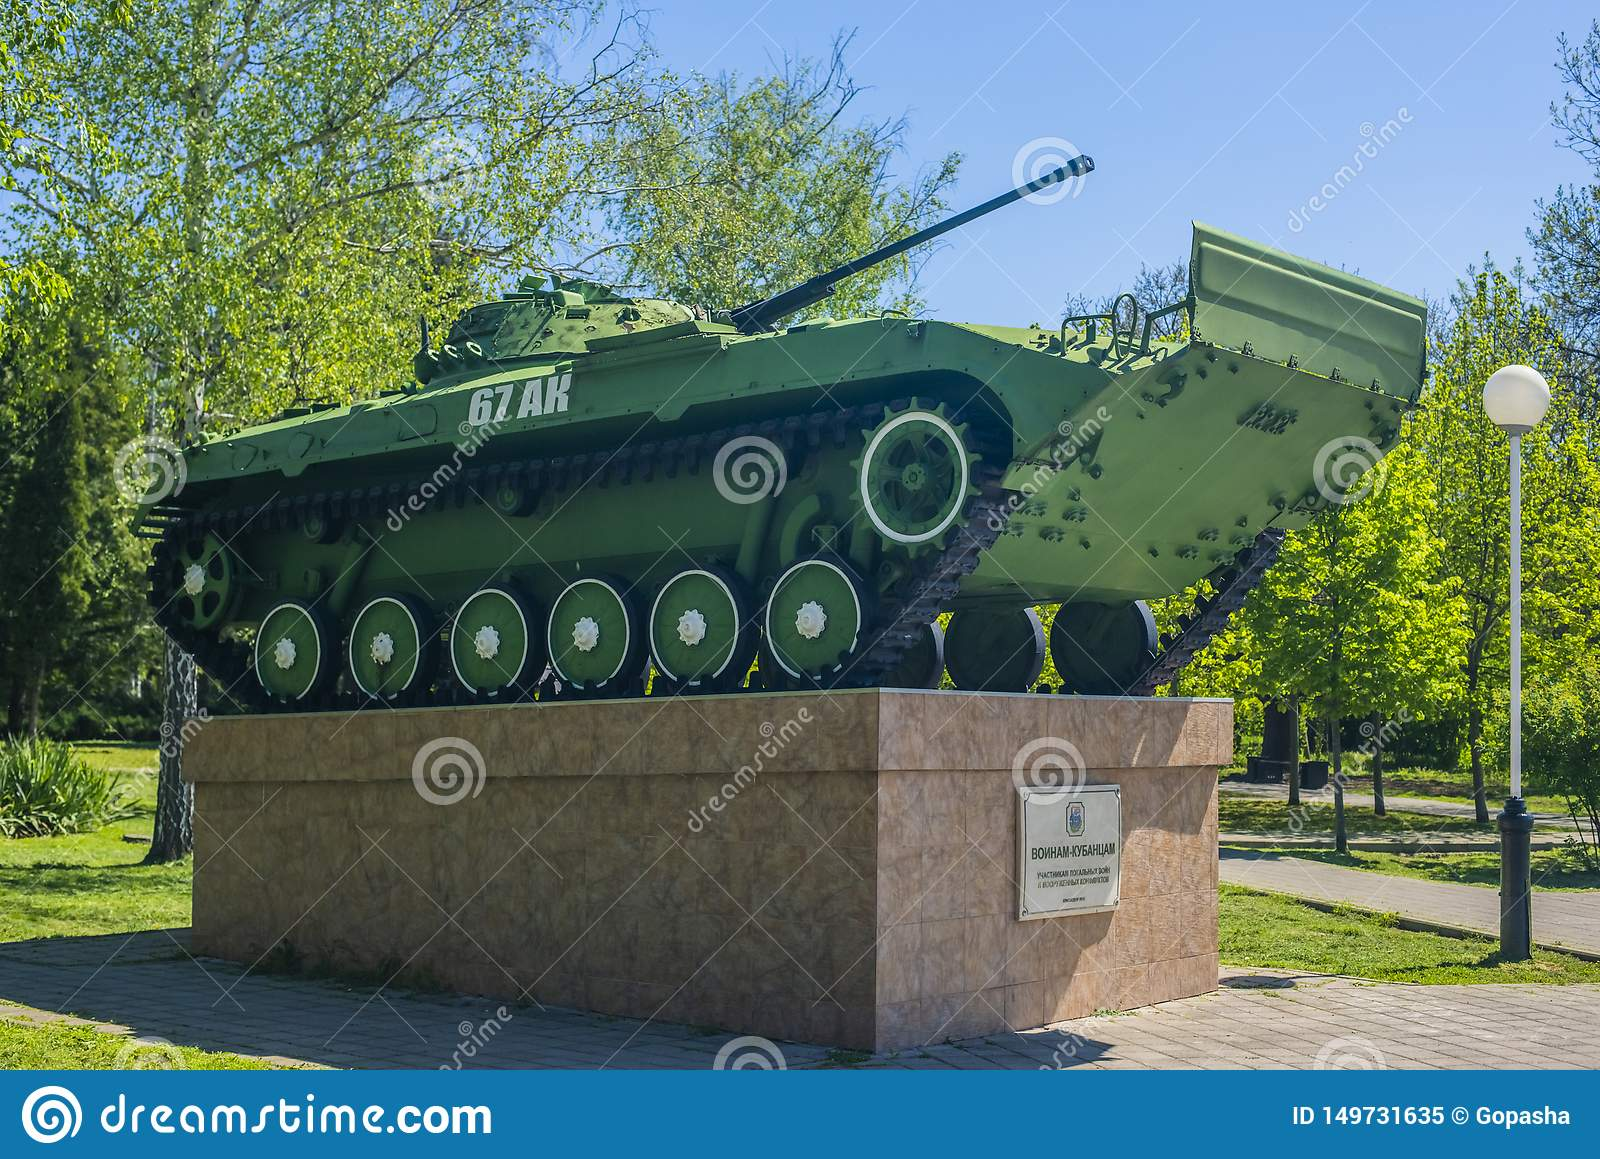 Krasnodar, Russia, 9 may 2019. Monument to Russian tank in the summer park. Historical monument